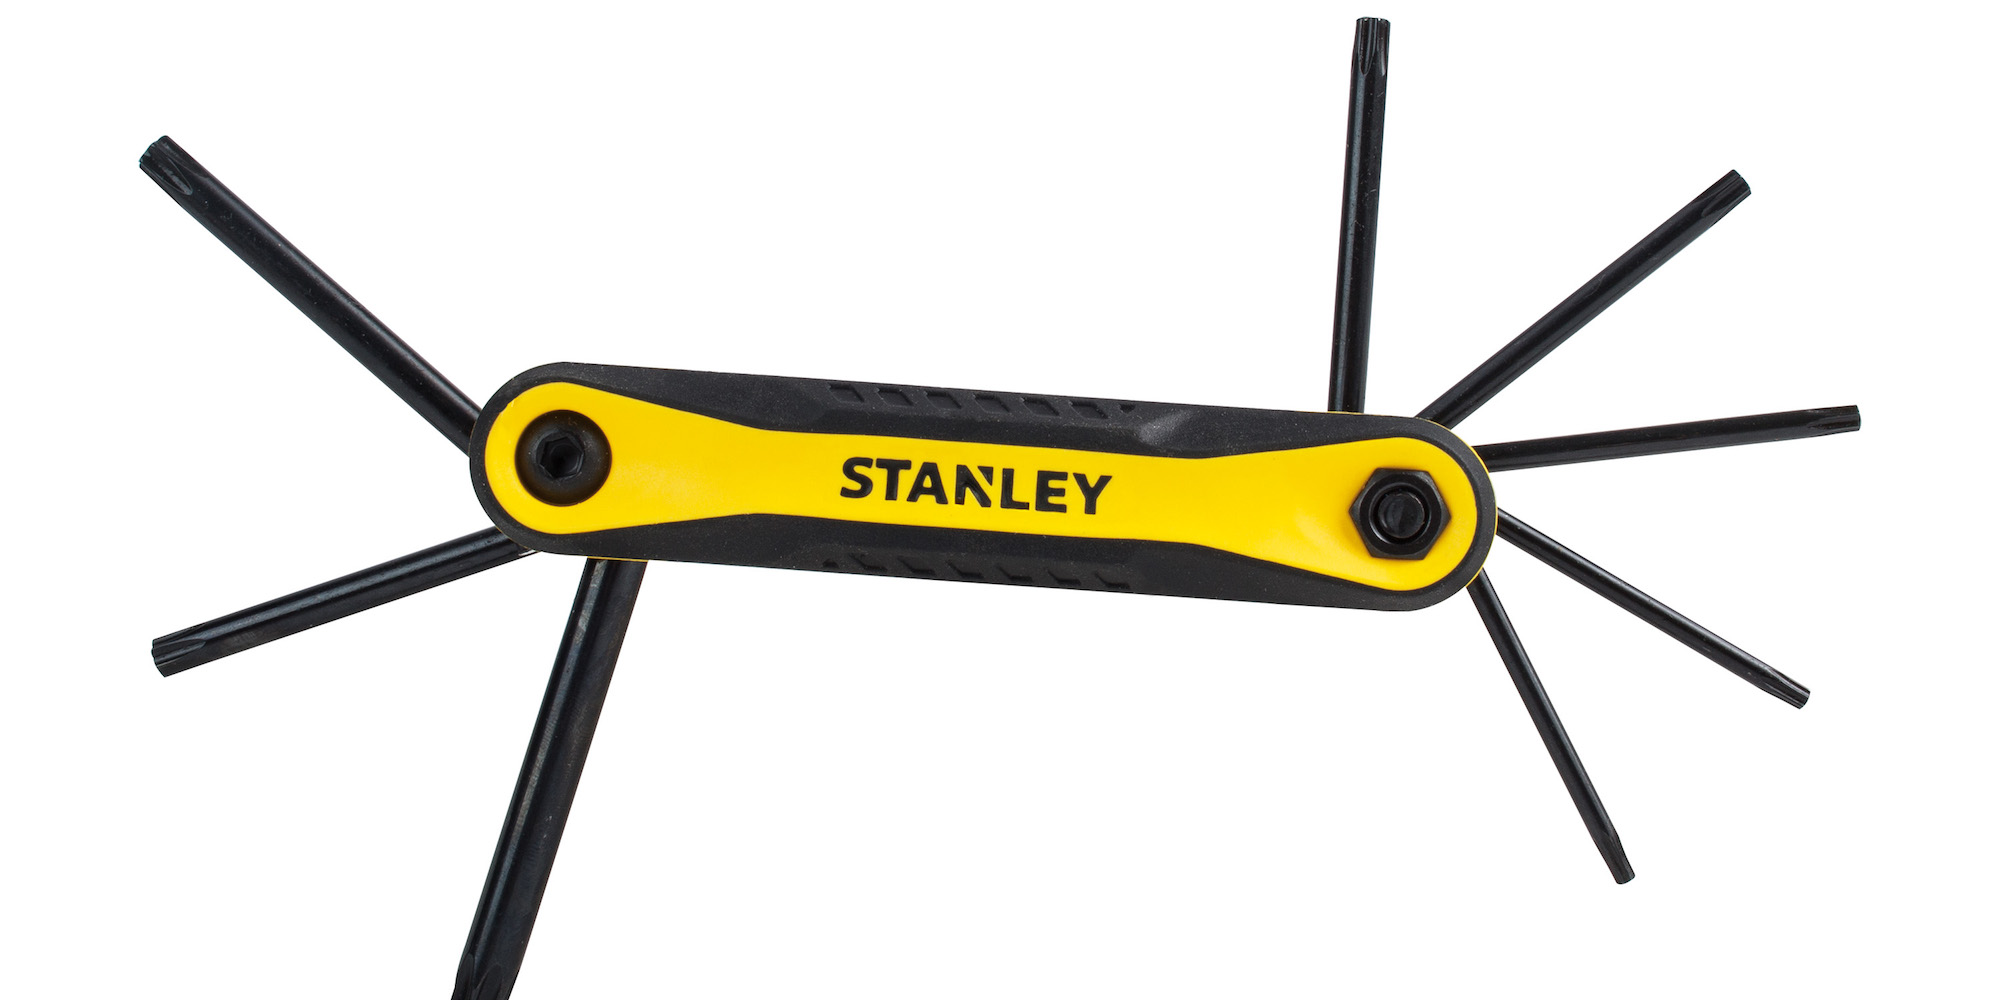 Throw the 8-pc. Stanley Star Hex Key Set in your toolbox for $3.50 (Reg. $7+) - 9to5Toys